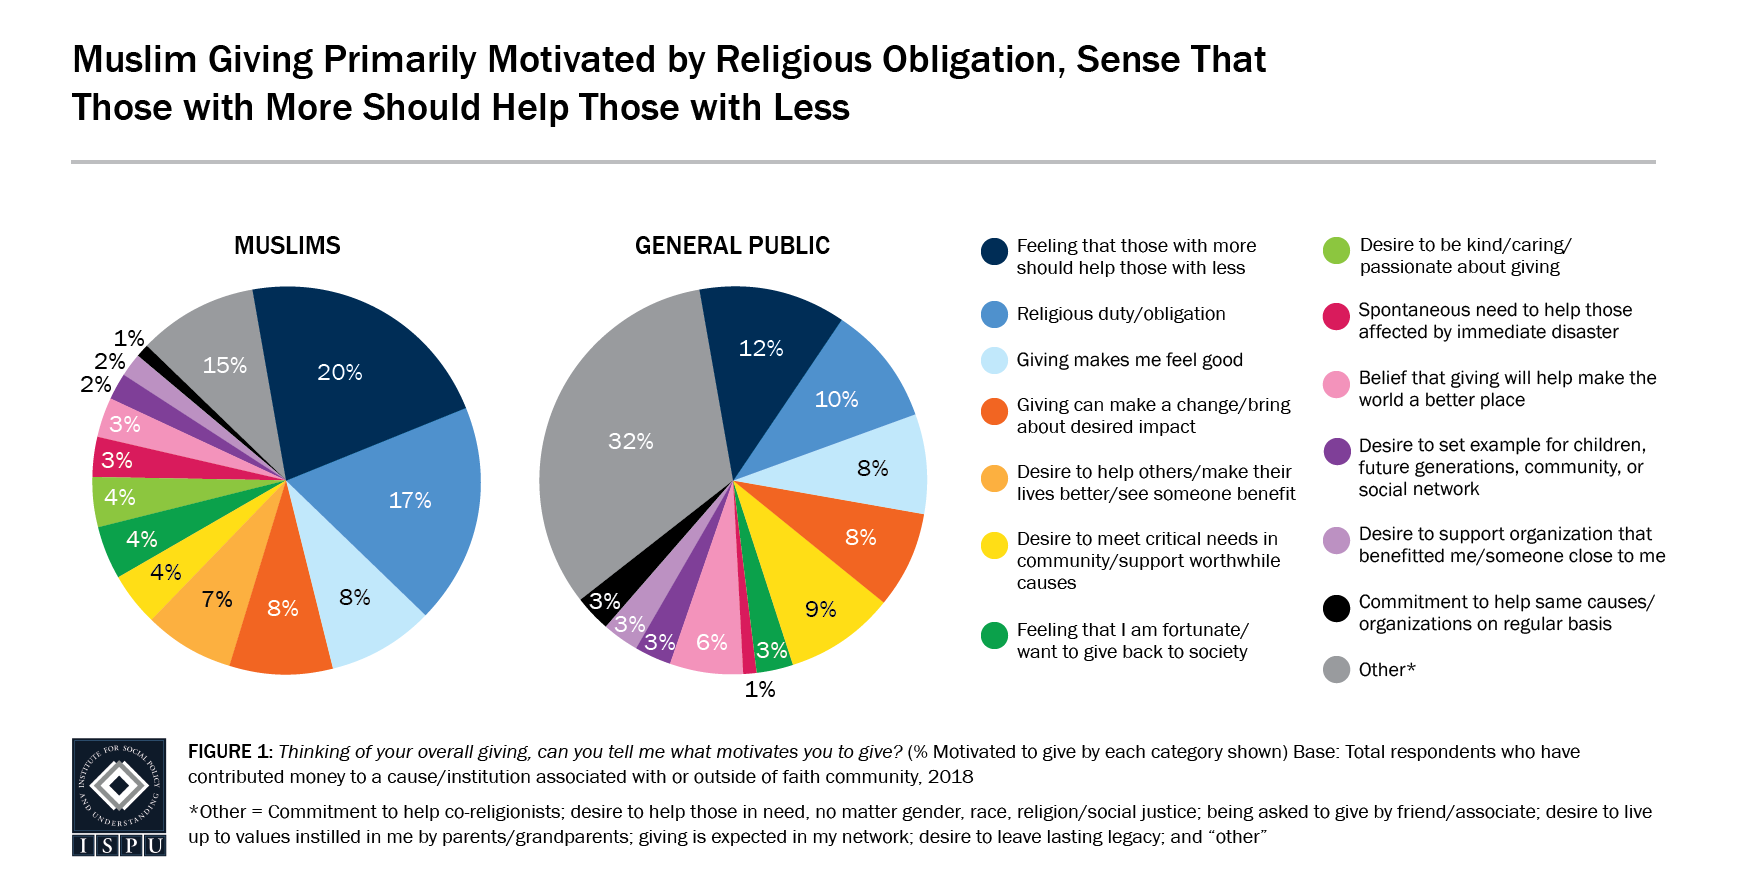 Figure 1: Two pie graphs showing that Muslim giving is primarily motivated by religious obligation and the sense that those with more should help those with less